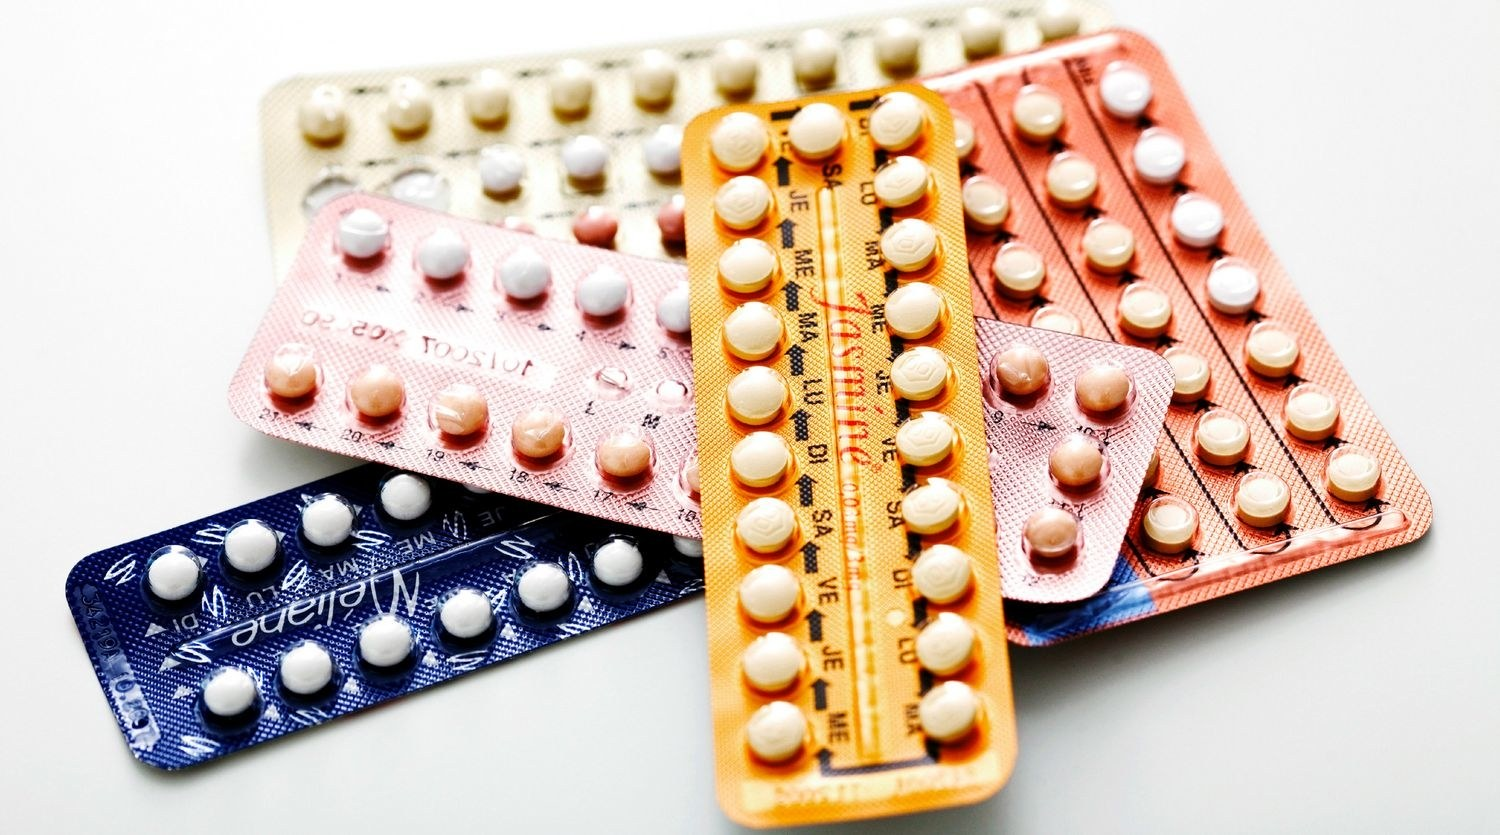 Birth control pills effect on sexuality